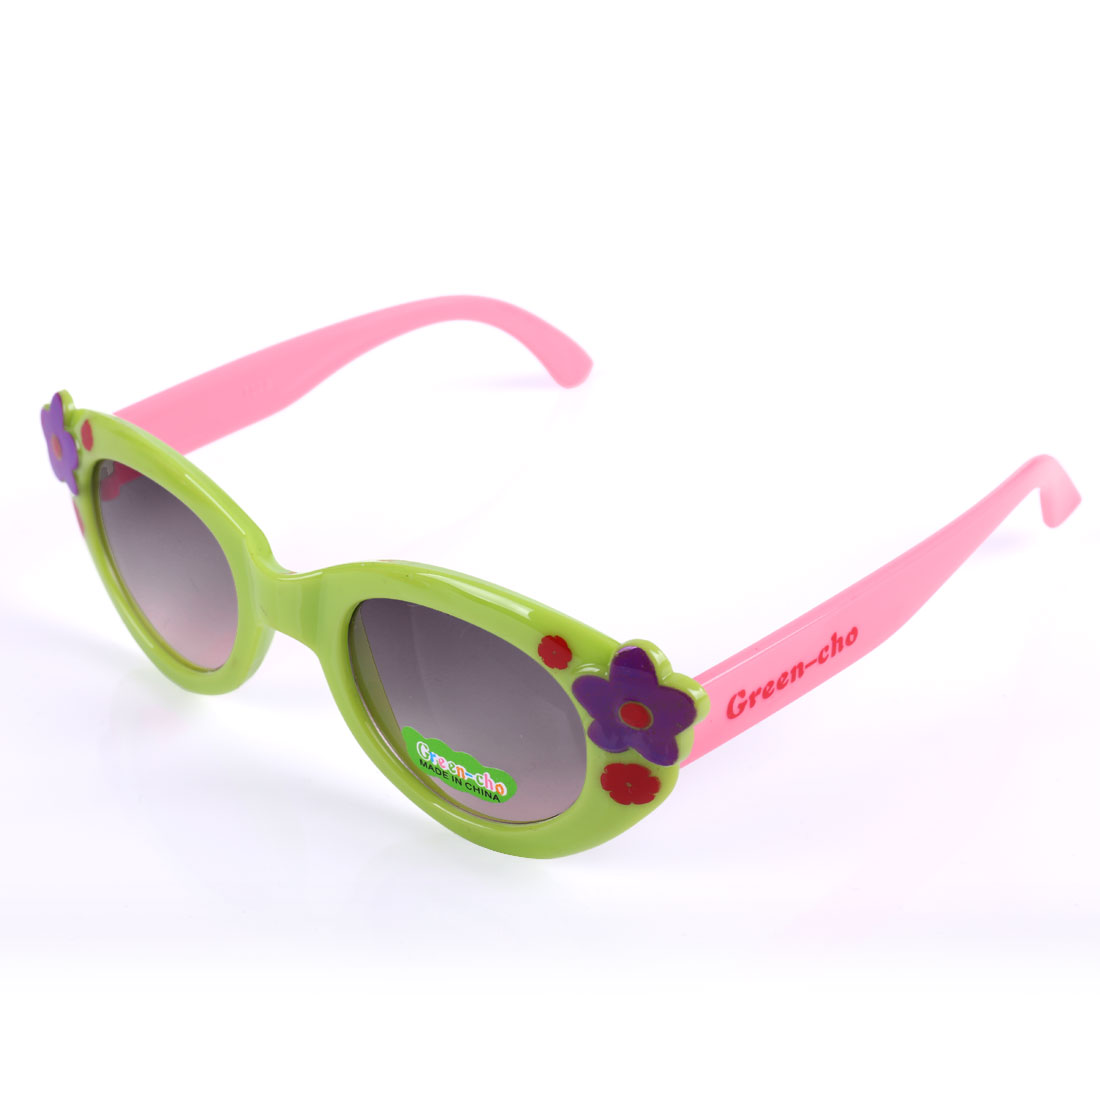 Girls Flower Style Color Block Sunglasses Light Green Pink